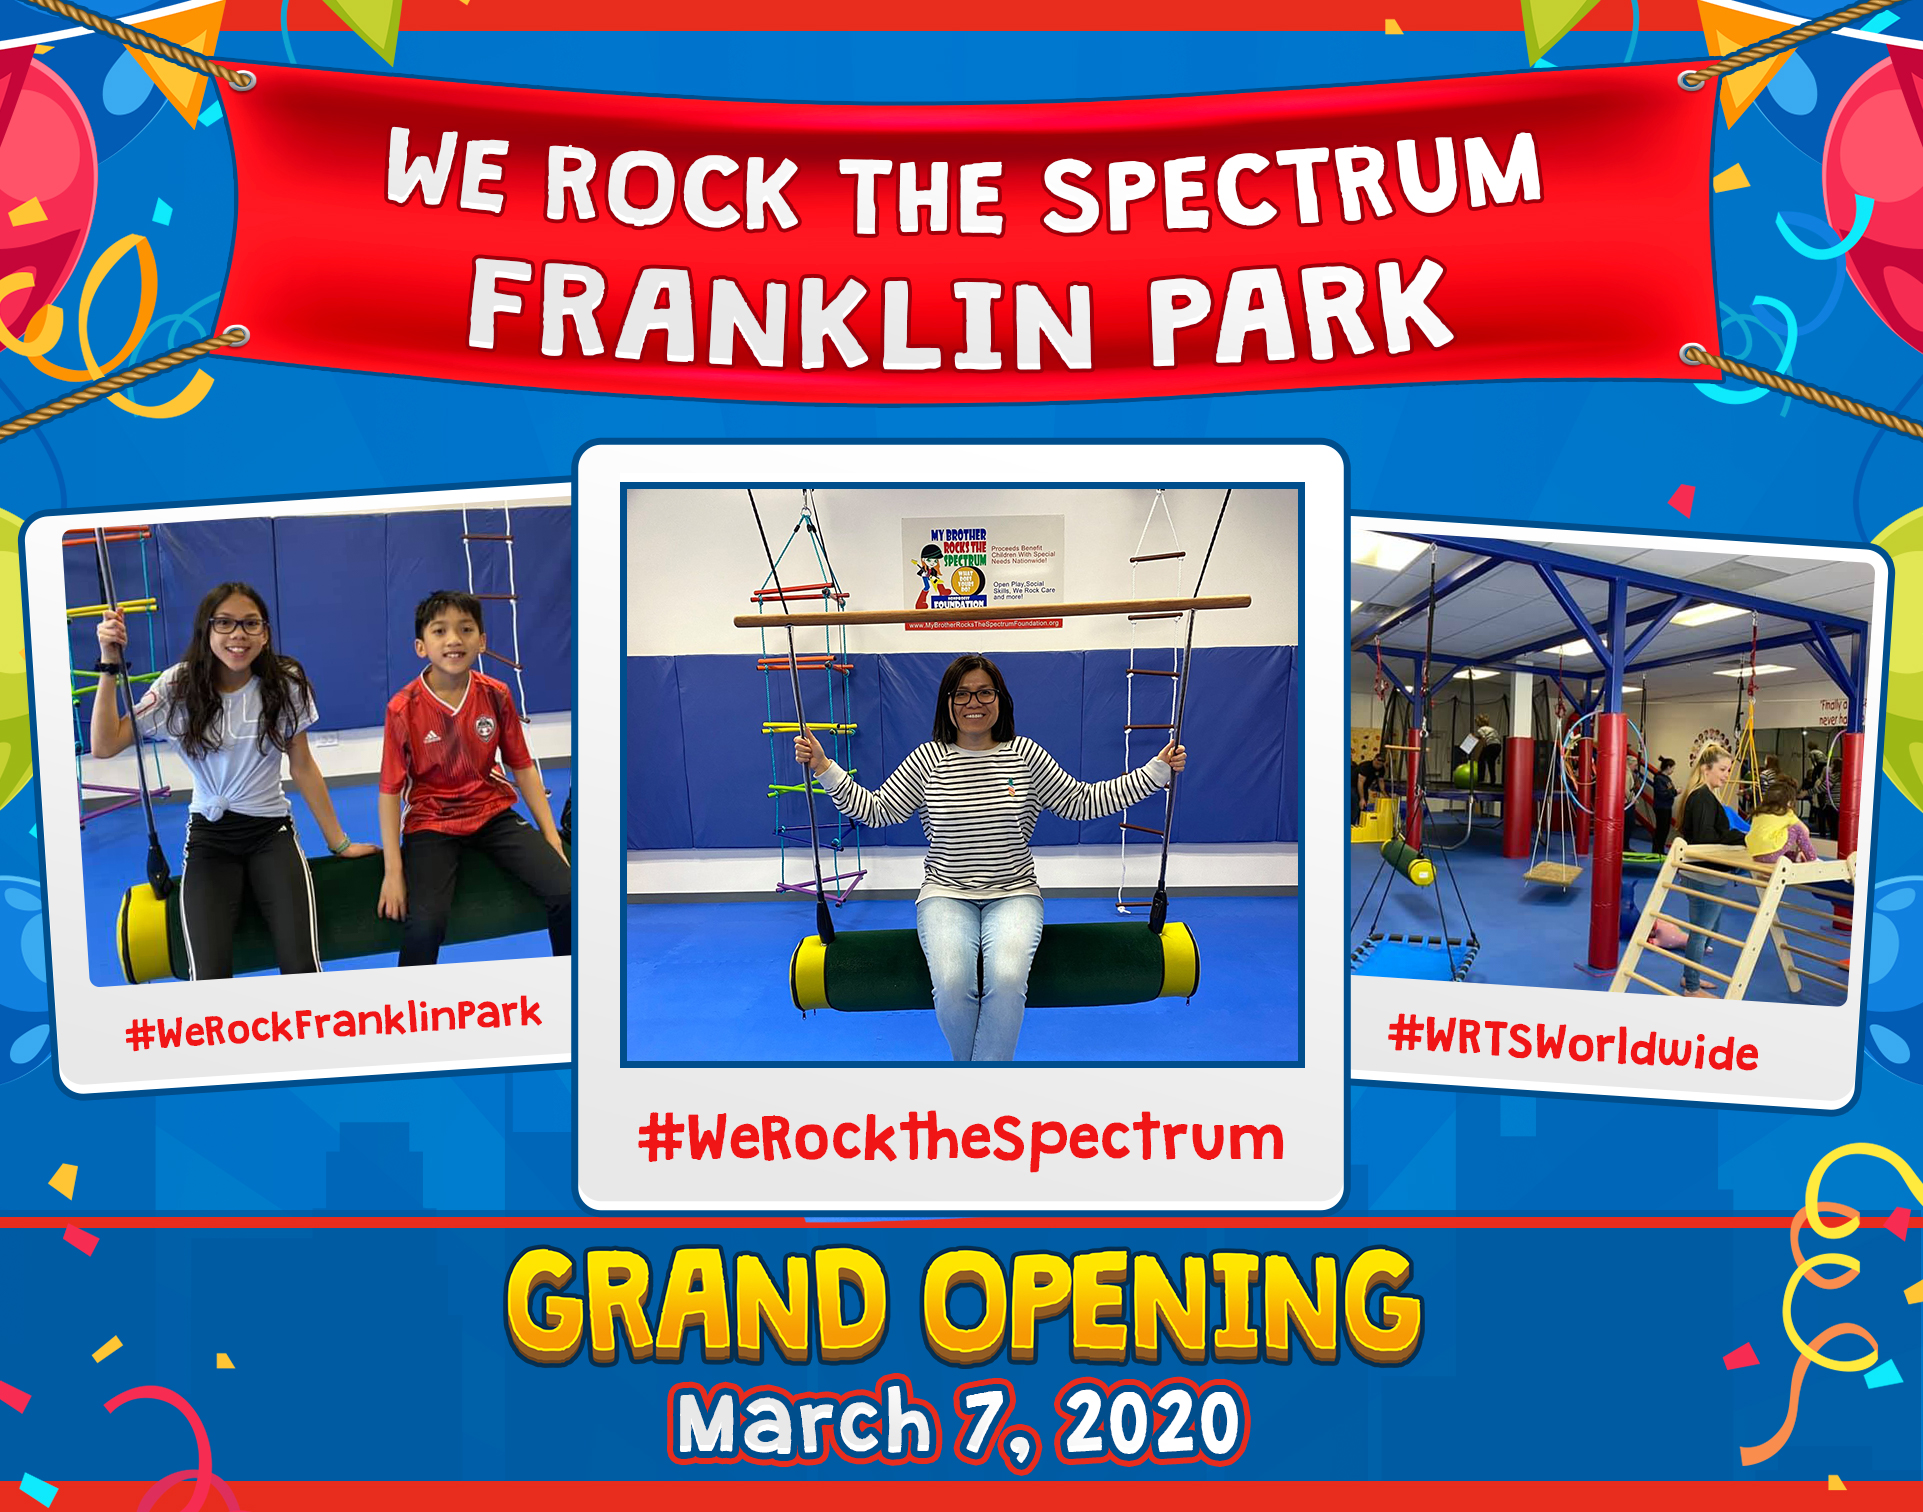 We Rock the Spectrum Franklin Park Grand Opening